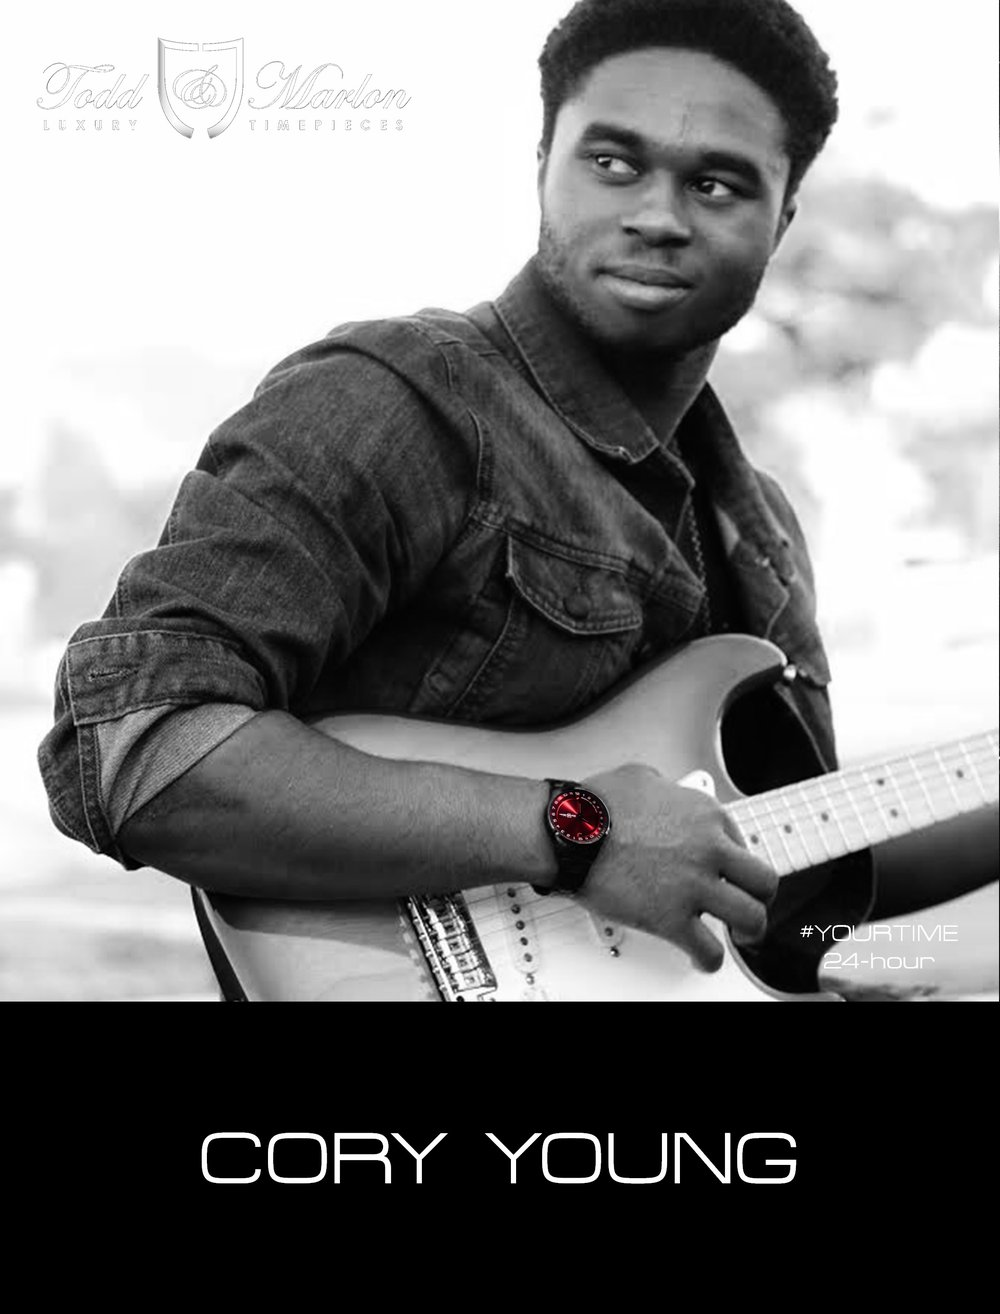 Cory Young is a bluesy artist who mixes rock, jazz and soul to form a unique sound. He is known for lyrics that make you think, and guitar solos that express what words cannot. For more Information follow him on social media @thecoryyoung